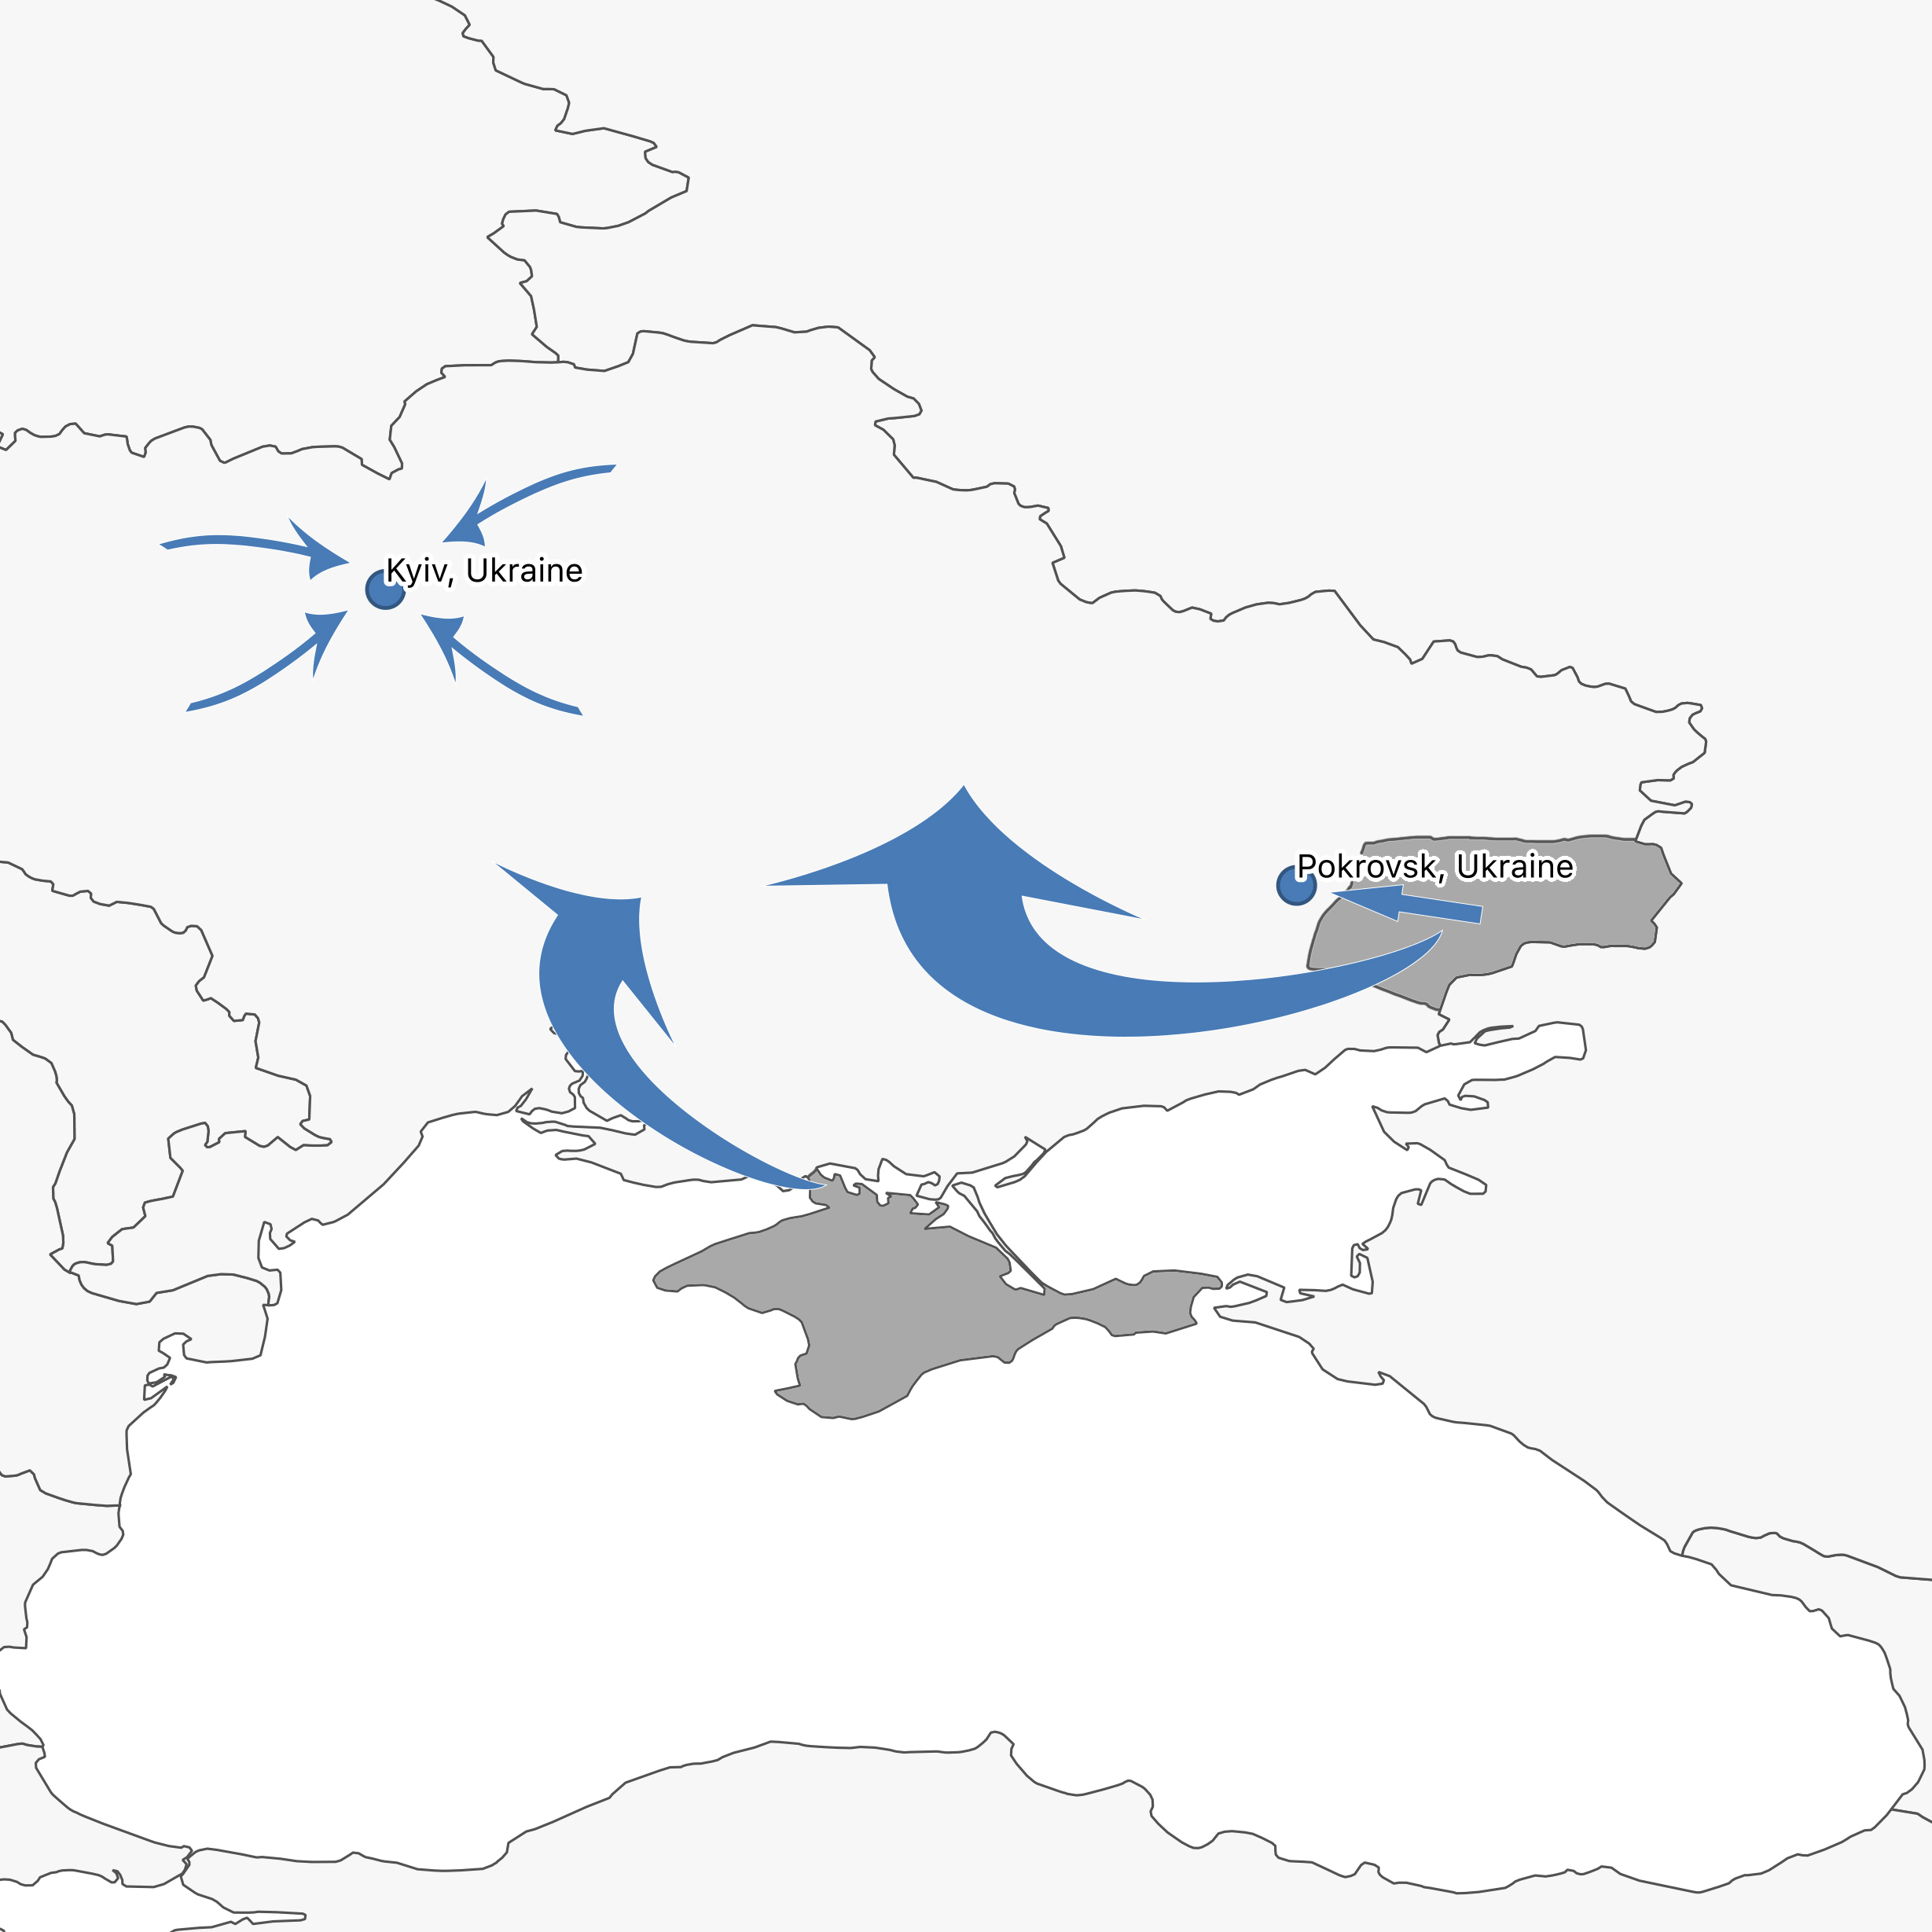 Pokrovsk is both a destination and a point for onward migration in the Eastern European region. Click the map to learn more about the region and to read more RIT case reports from cities and towns linked together by these movements of people.